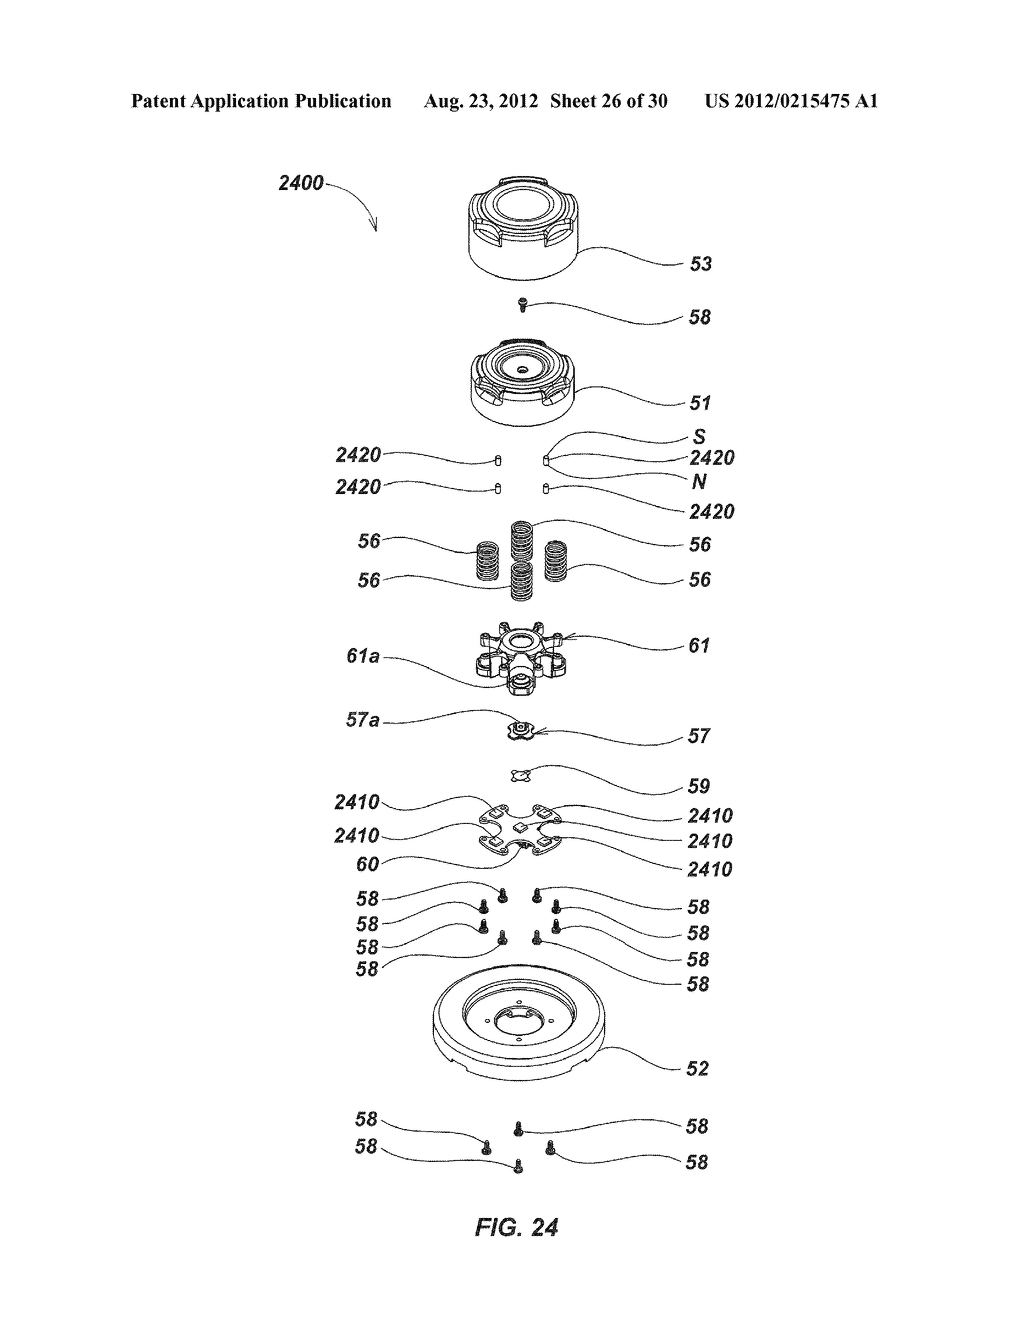 MAGNETIC SENSING USER INTERFACE DEVICE METHODS AND APPARATUS - diagram, schematic, and image 27